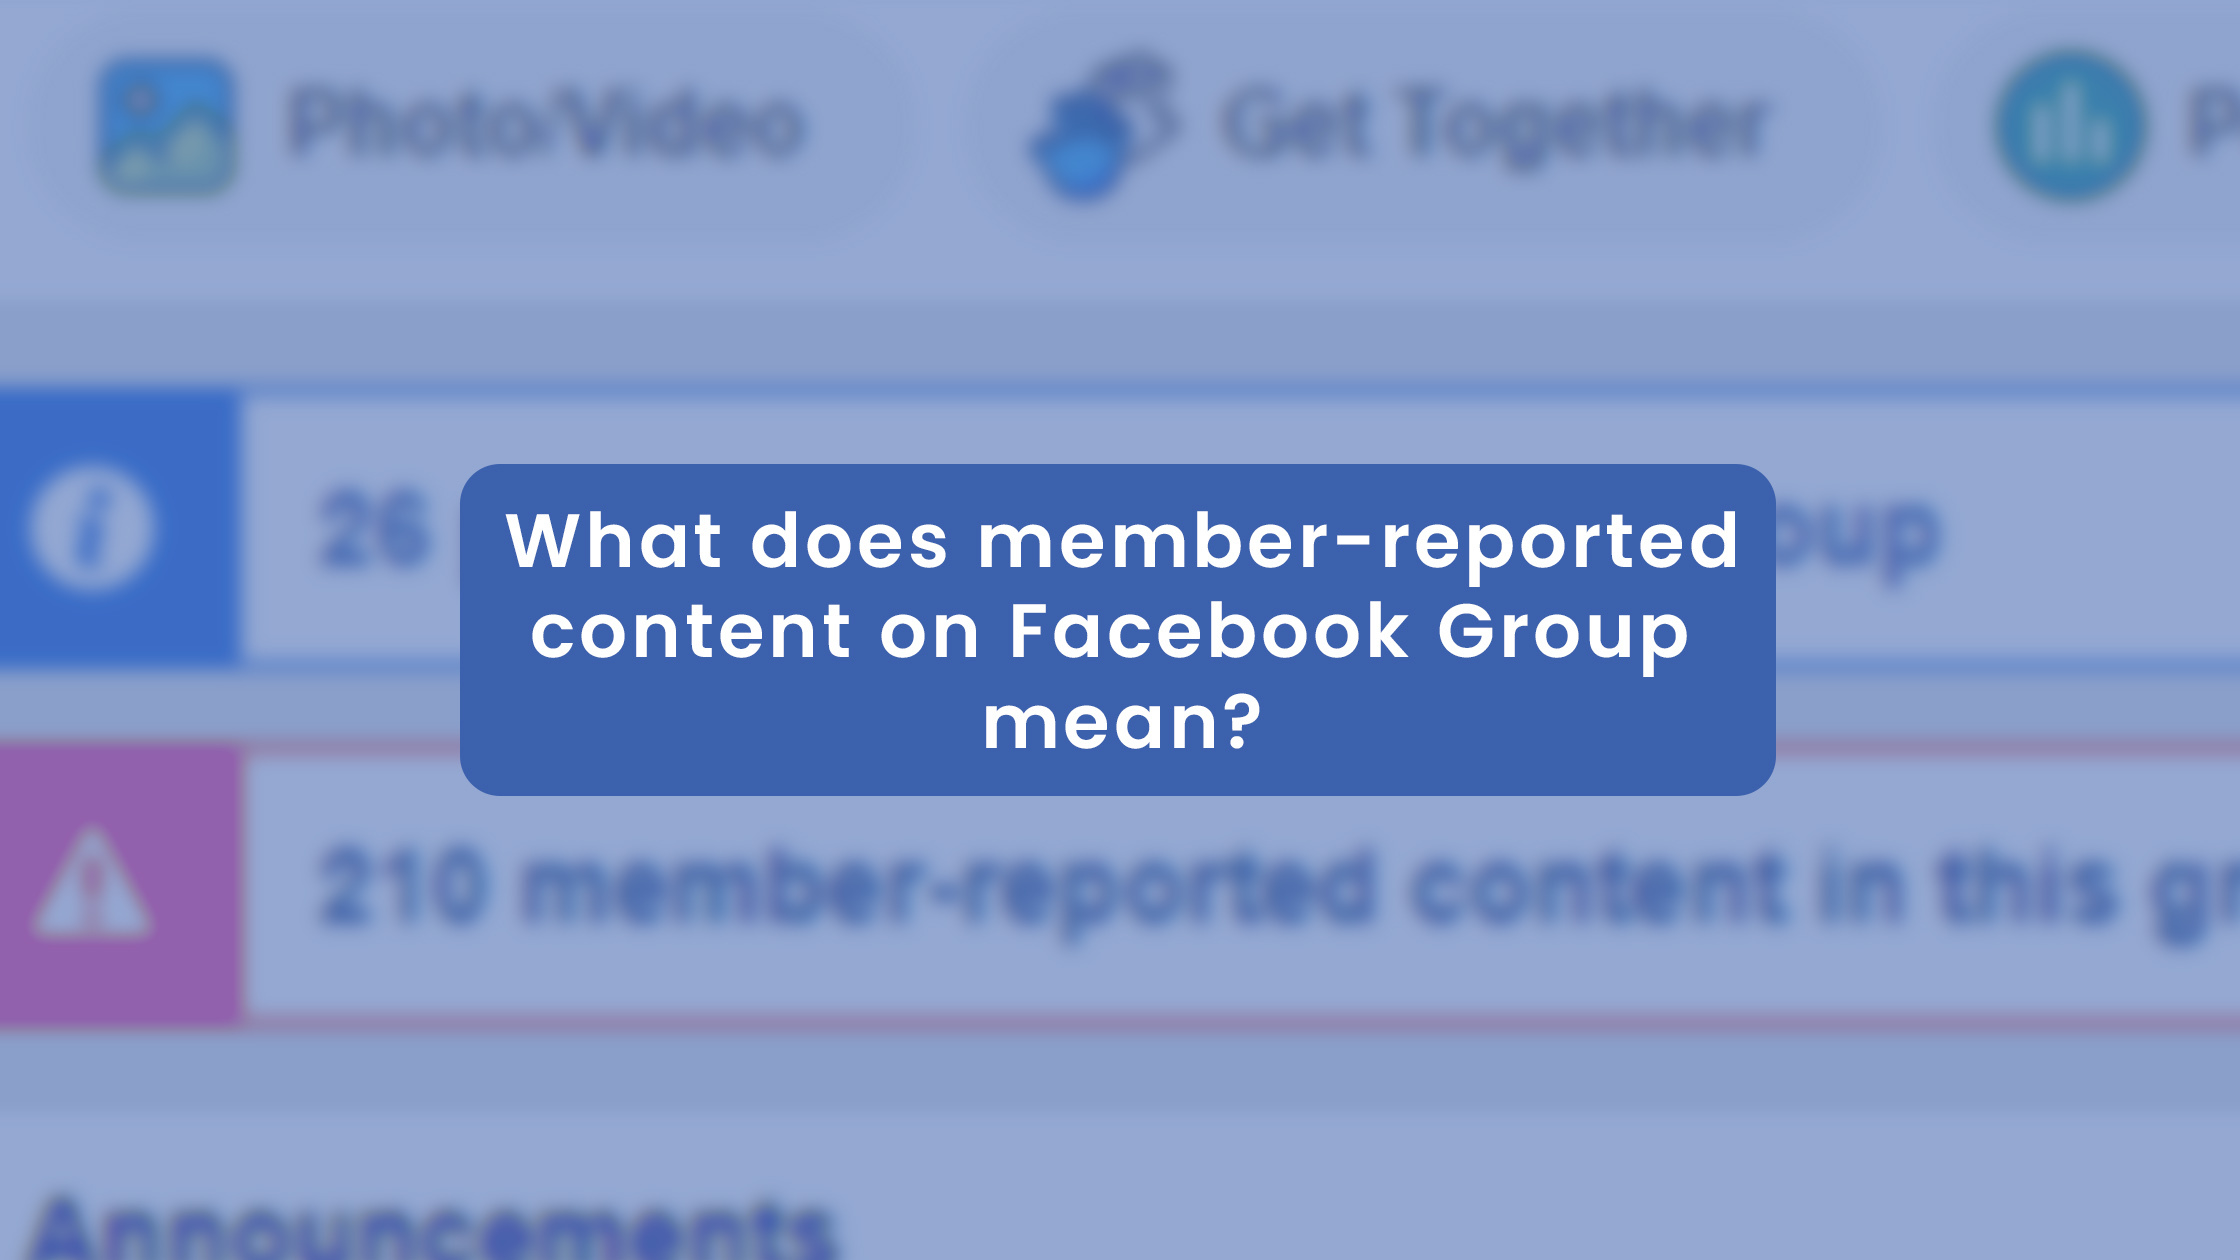 What does member-reported content on Facebook Group mean?